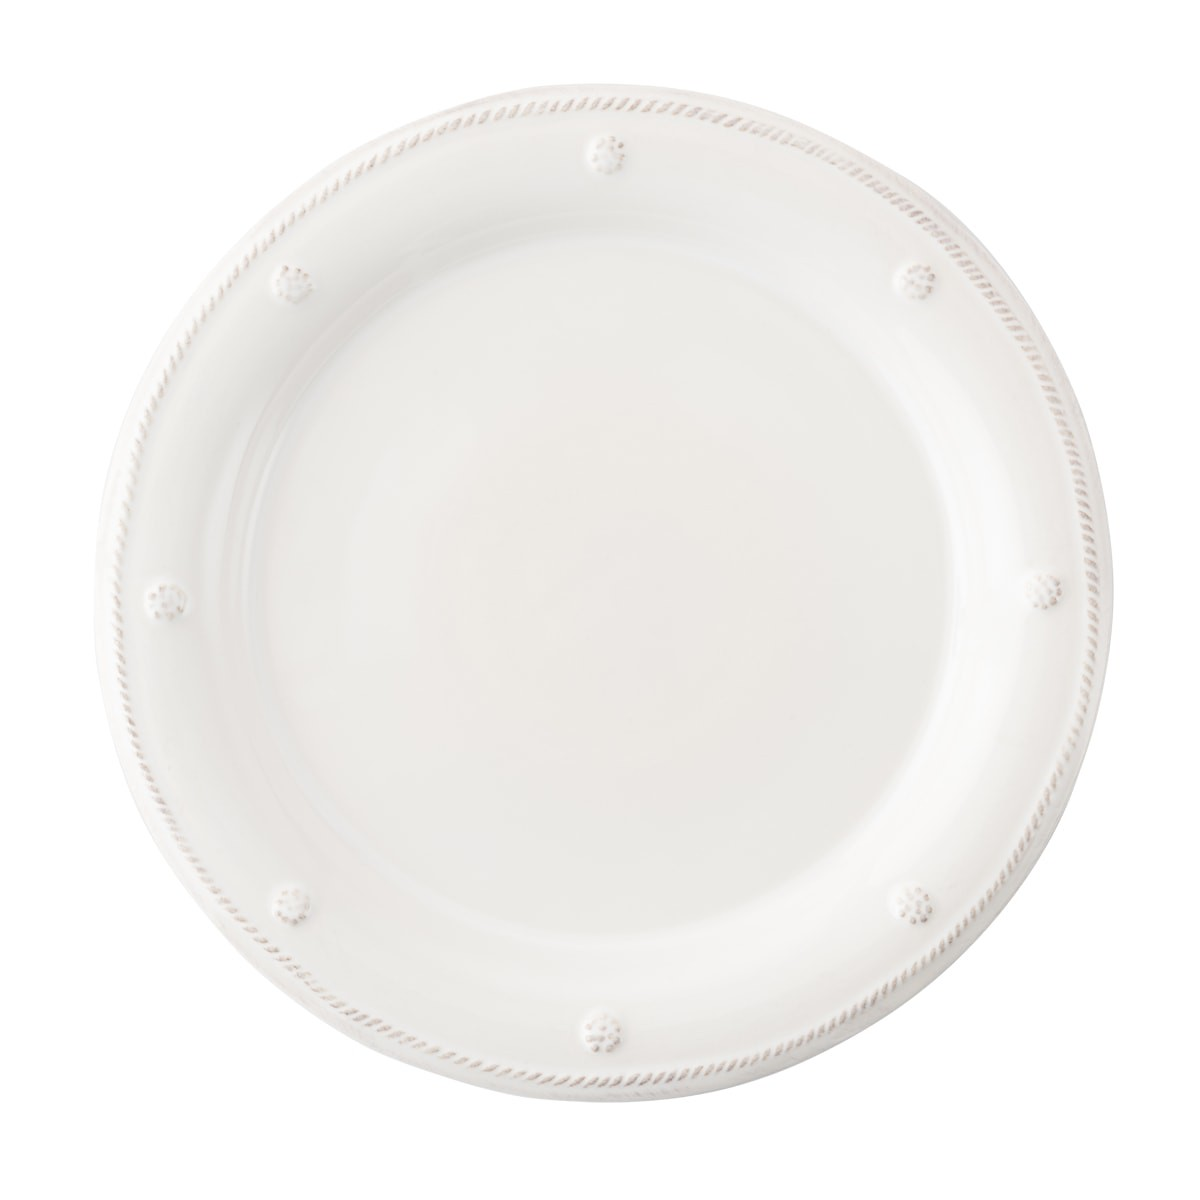 14368 - Berry & Thread White Dinner Plate (6) - $40/each - Received (6)